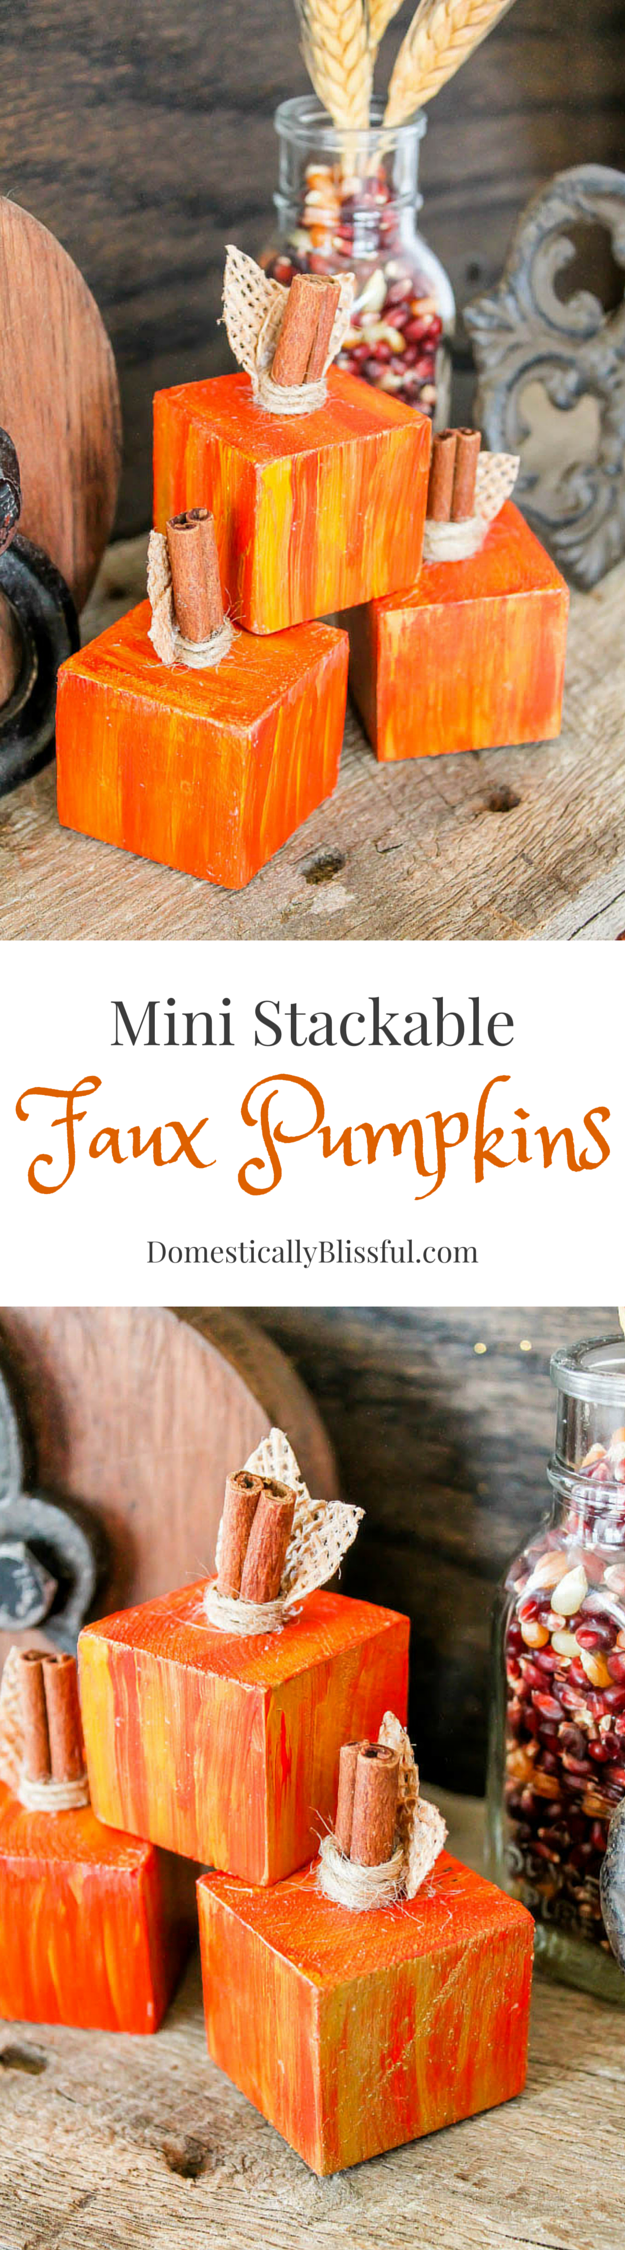 DIY Mini Stackable Faux Pumpkins